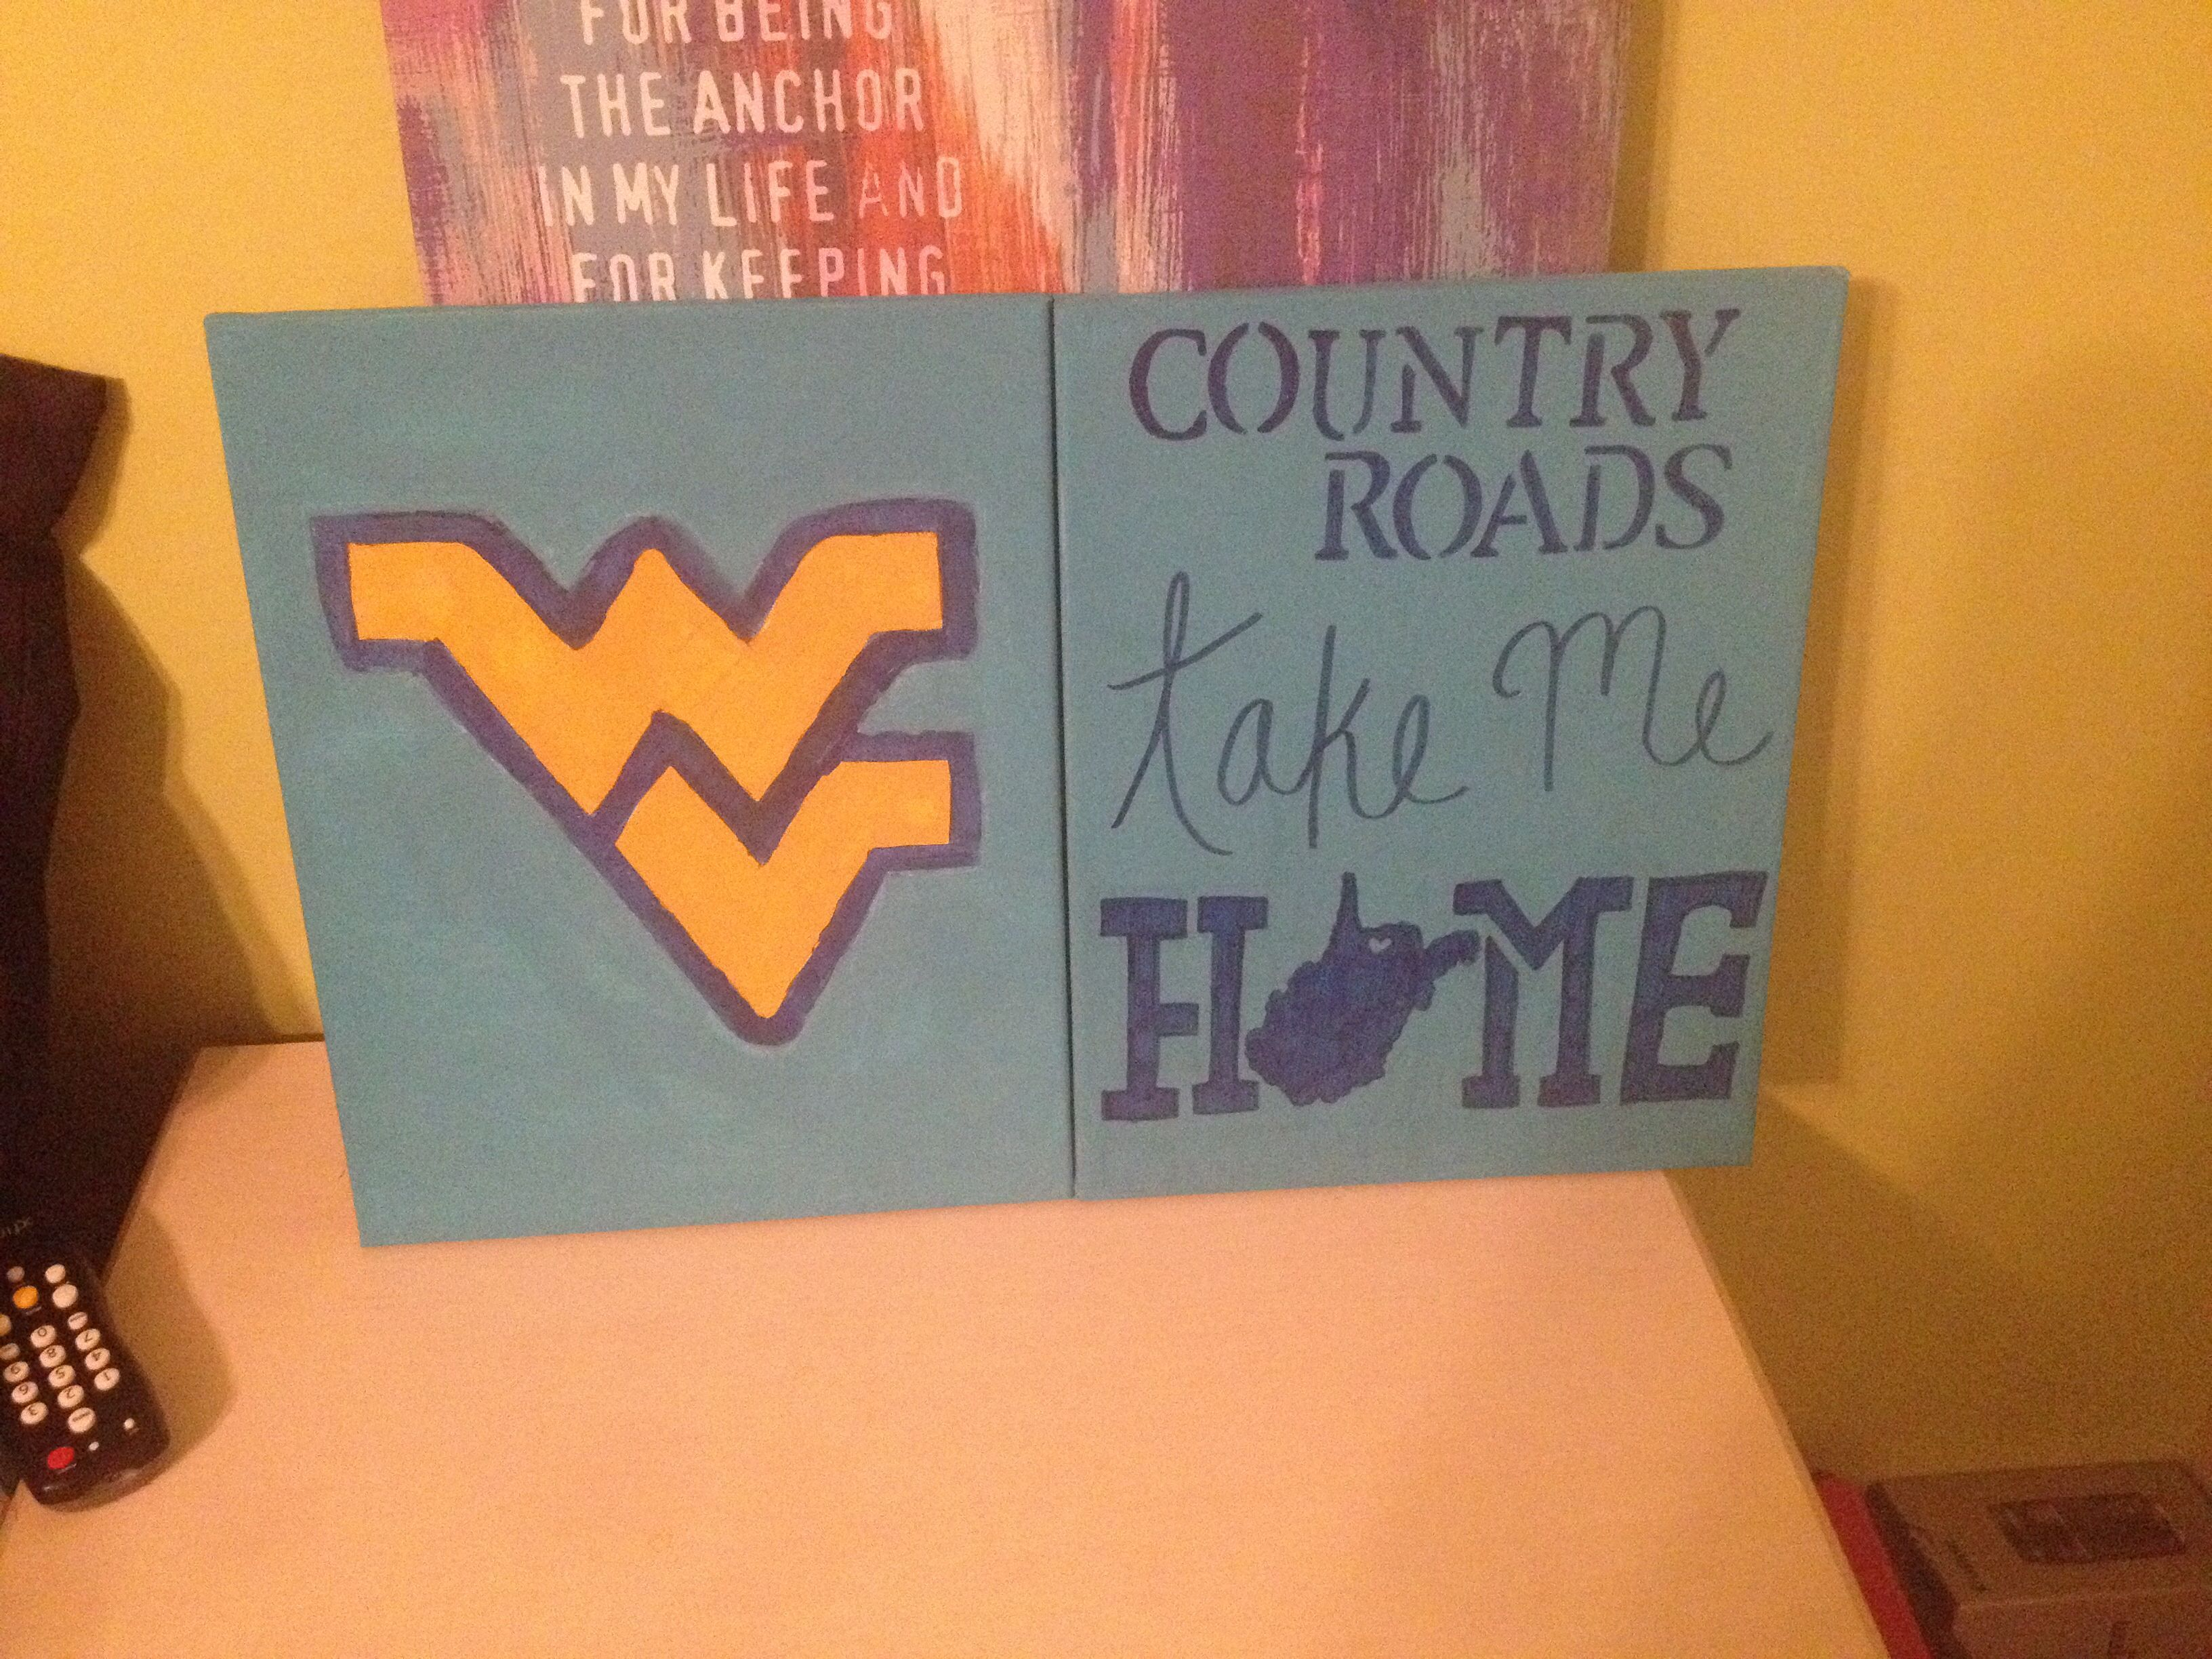 Canvases make great gifts for the Mountaineer in your life. #WVU #Mountaineers #LetsGoMountaineers #WestVirginia #WestVirginiaUniversity #Morgantown #wvumountaineers Canvases make great gifts for the Mountaineer in your life. #WVU #Mountaineers #LetsGoMountaineers #WestVirginia #WestVirginiaUniversity #Morgantown #wvumountaineers Canvases make great gifts for the Mountaineer in your life. #WVU #Mountaineers #LetsGoMountaineers #WestVirginia #WestVirginiaUniversity #Morgantown #wvumountaineers Ca #wvumountaineers